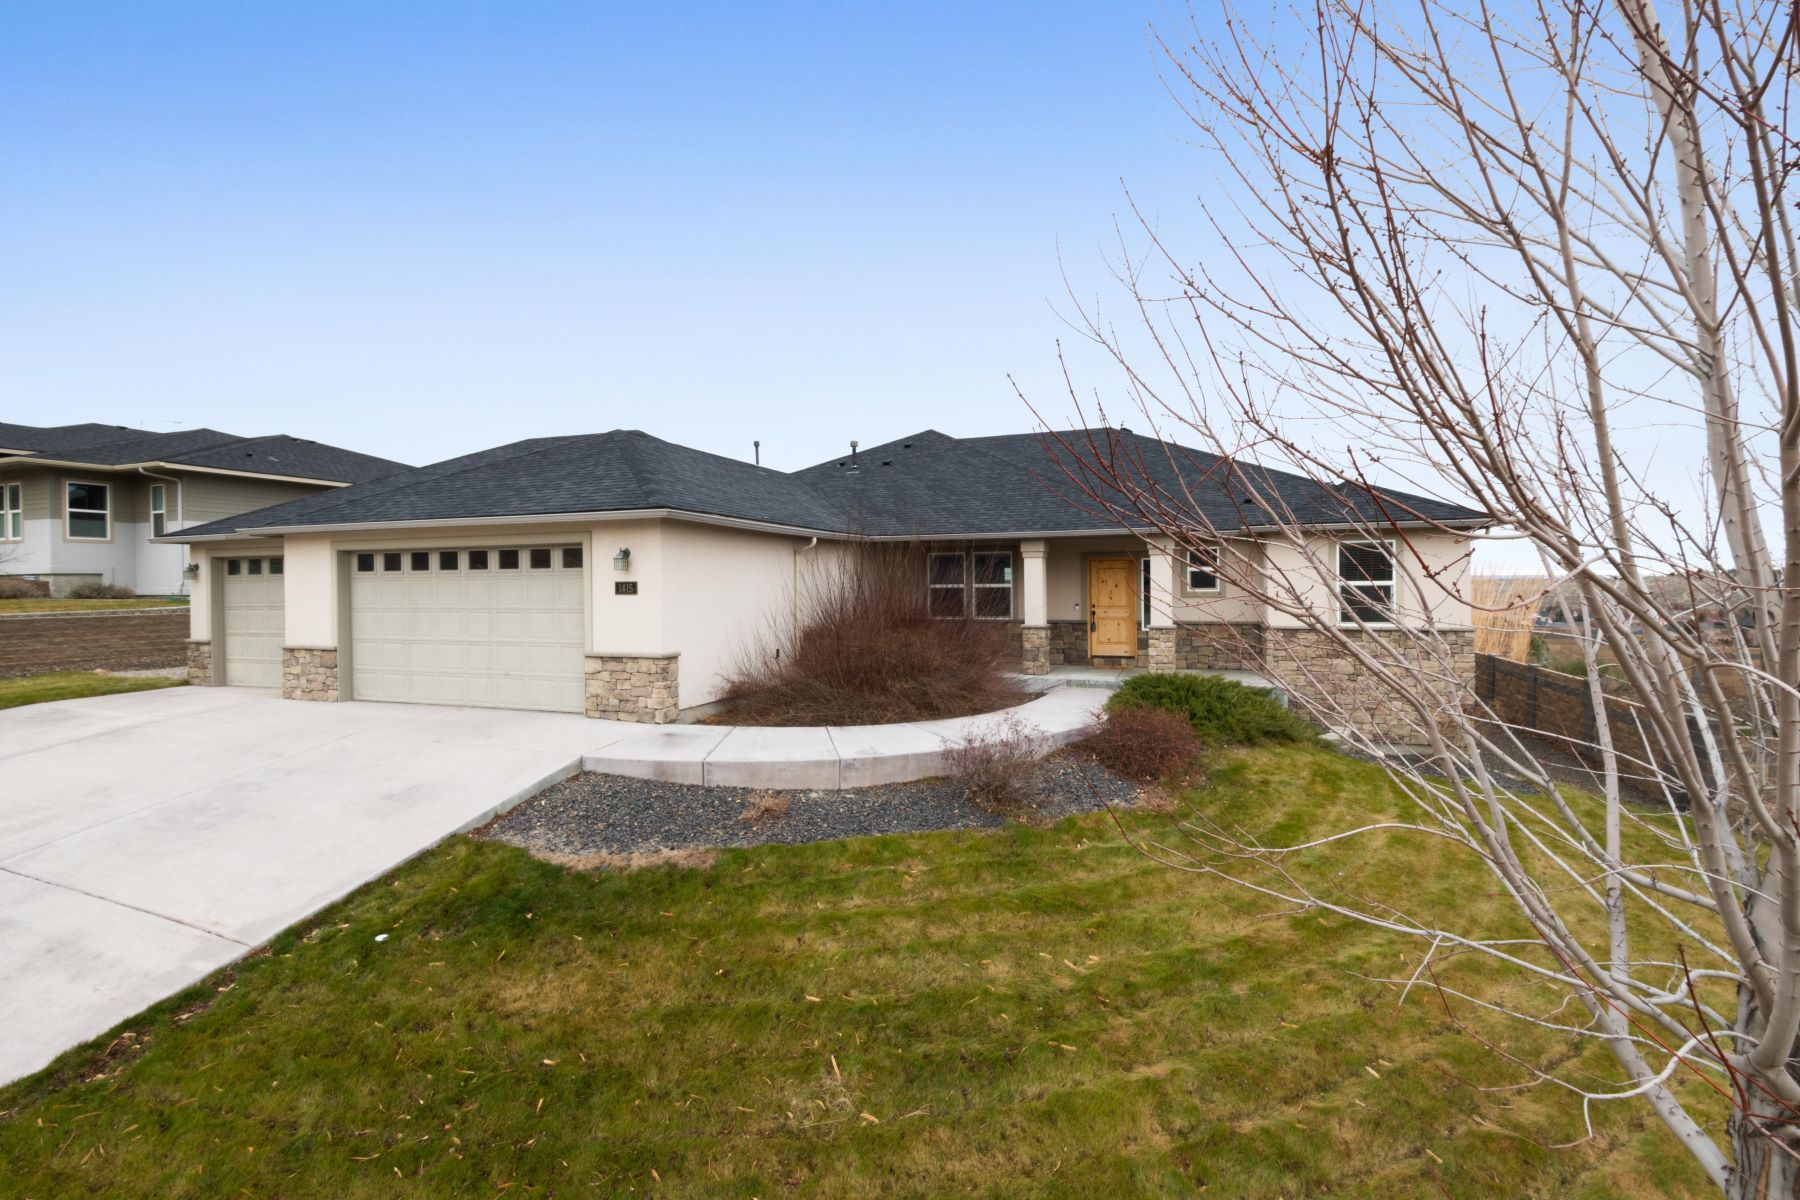 Single Family Homes for Sale at Well Maintained One Level Home in Great Location 1415 Badger Mountain Loop Richland, Washington 99352 United States